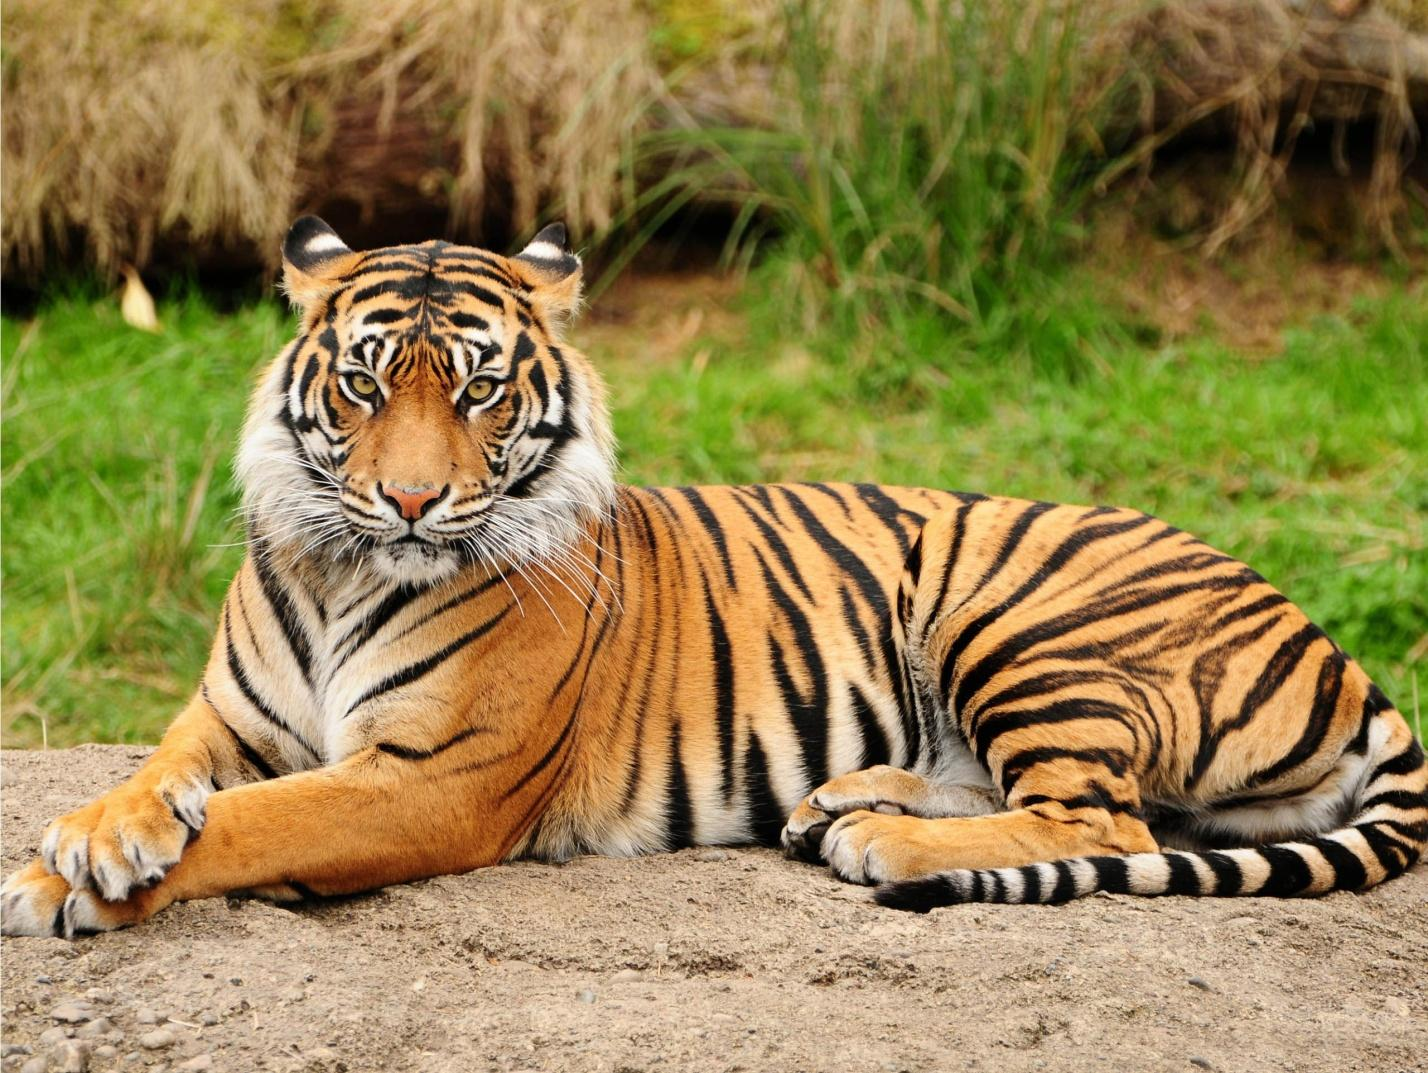 C:\Users\user\Desktop\blog pics\tiger7.jpg